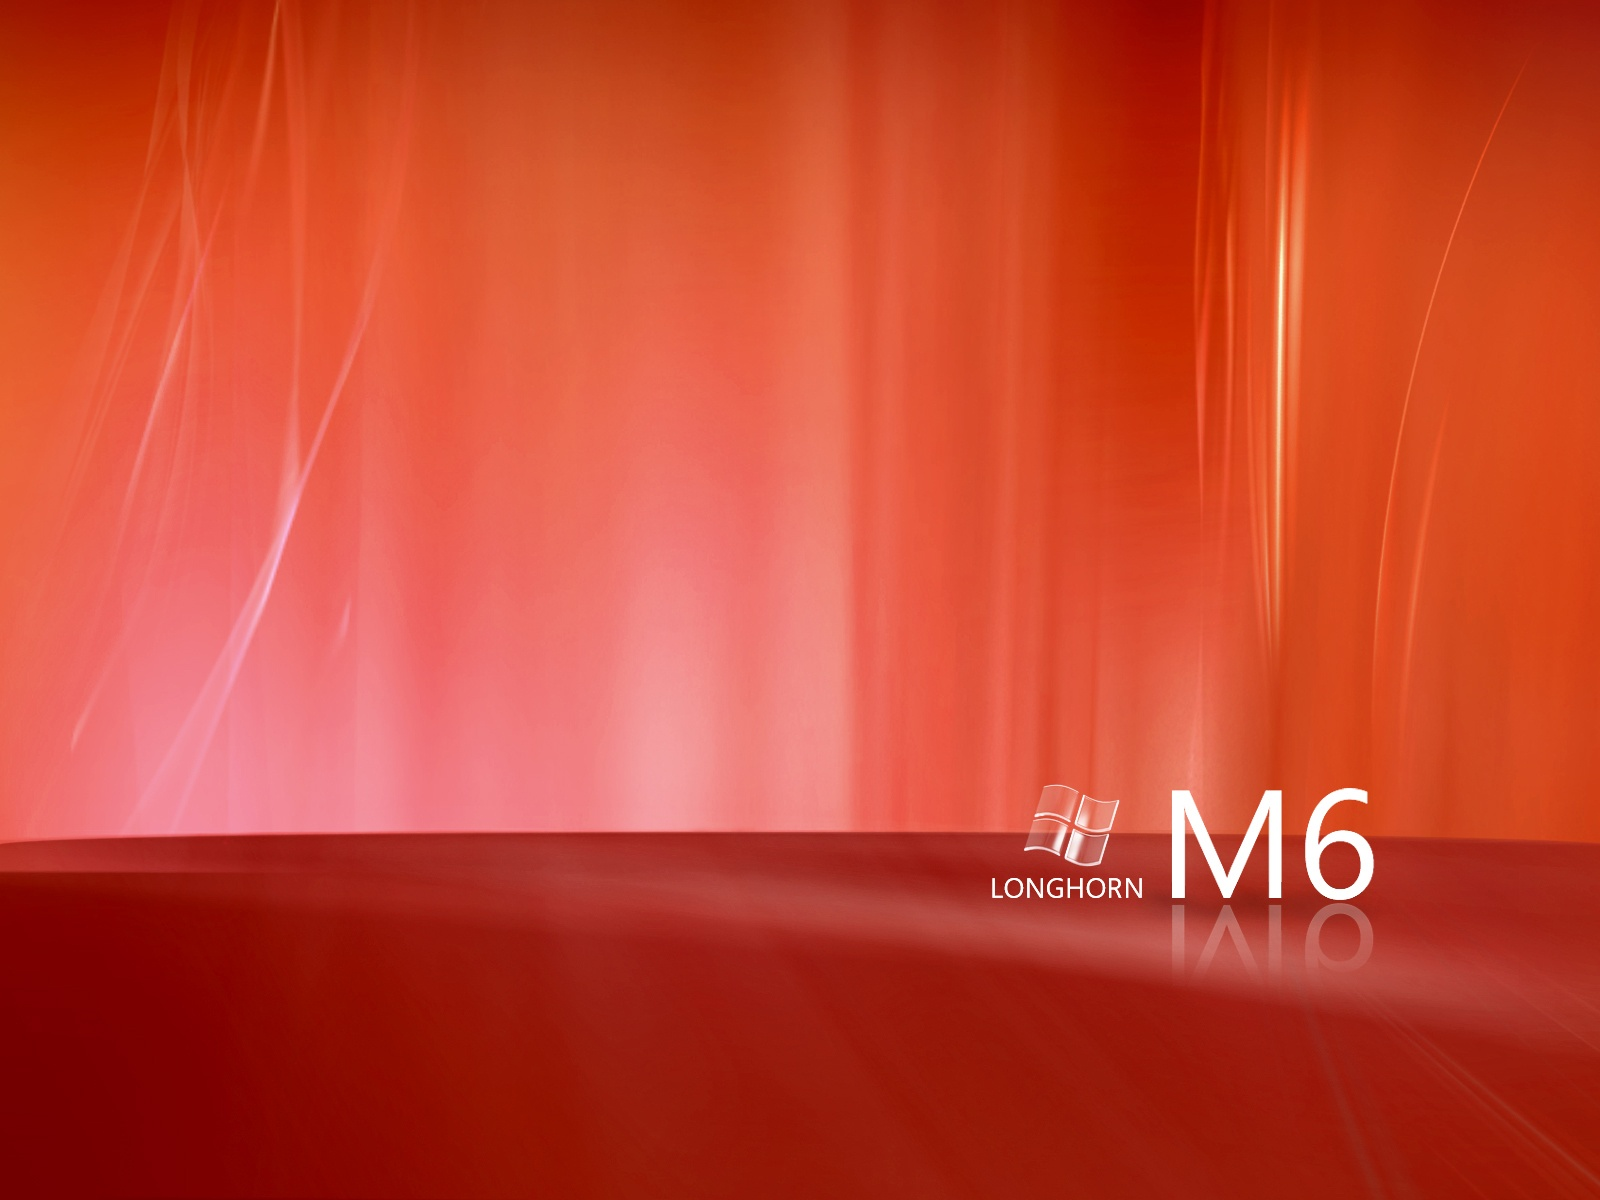 3d Animated Wallpapers For Windows 7 Longhorn M6 Wallpapers Longhorn M6 Stock Photos